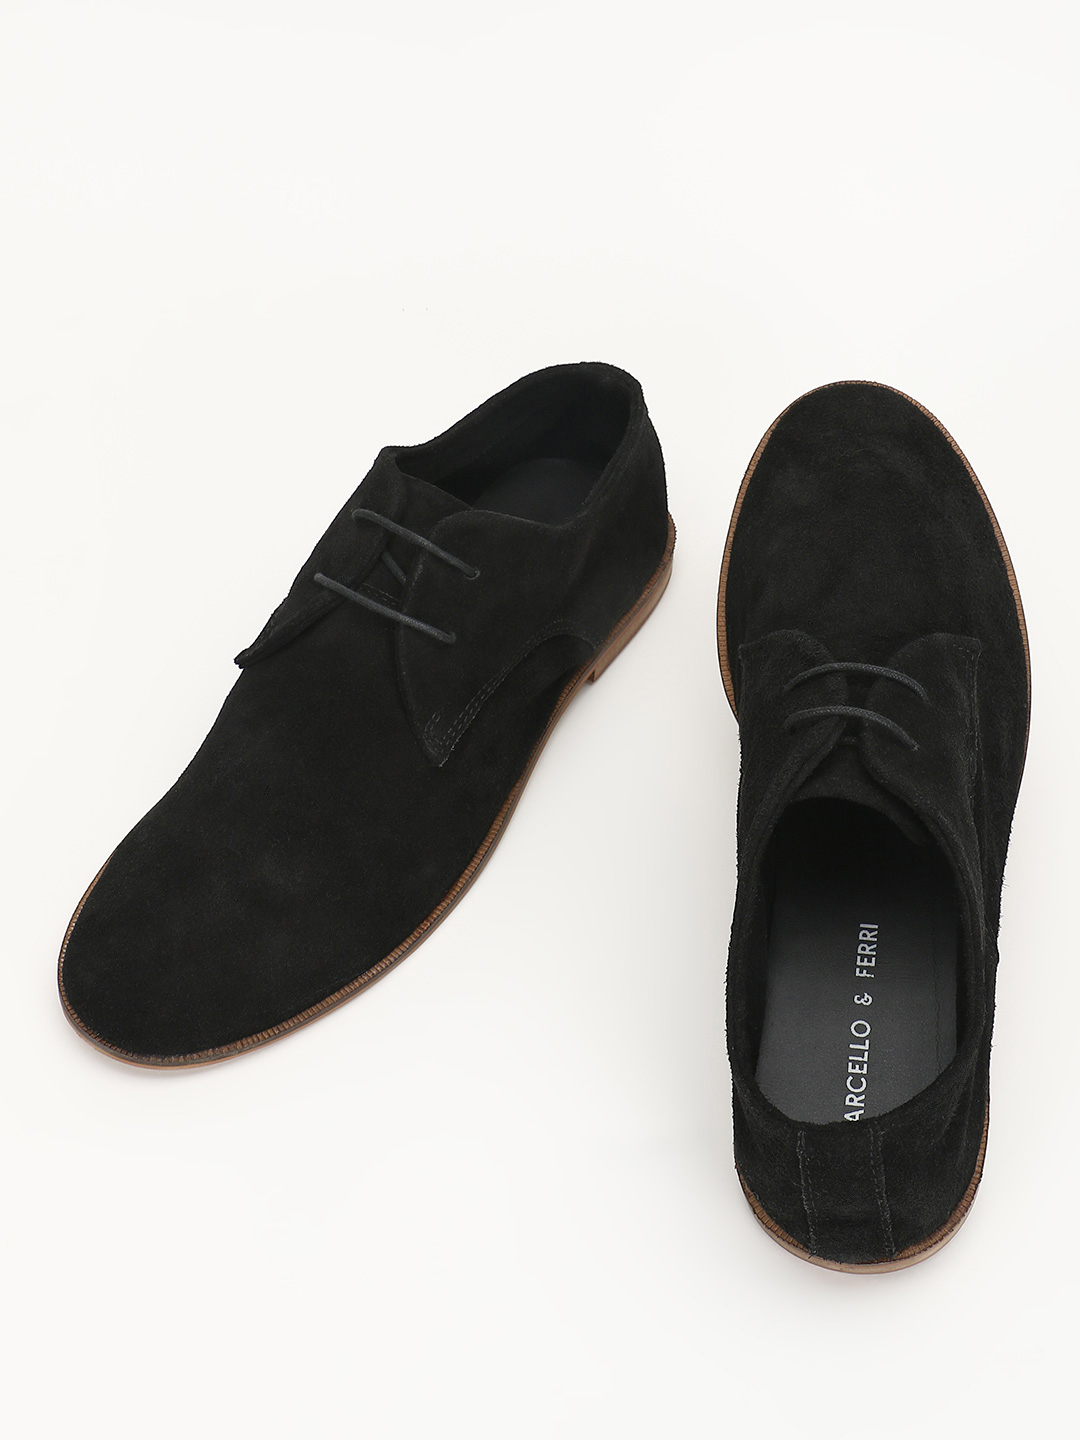 Marcello & Ferri Black Suede Leather Derby Shoes 1